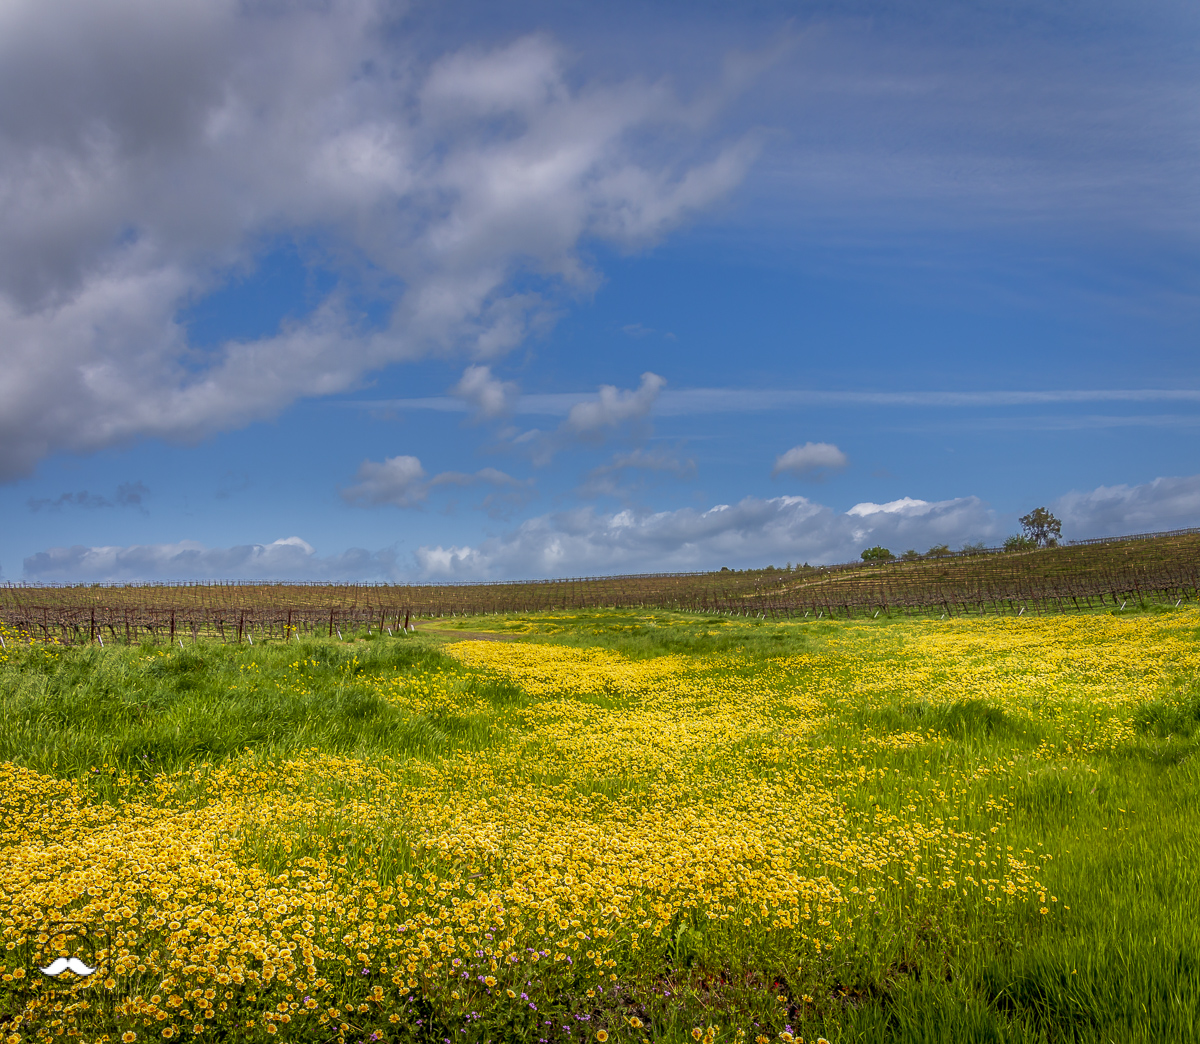 Off of County Road 95A in Yolo County, California, U.S.A. April 7, 2018